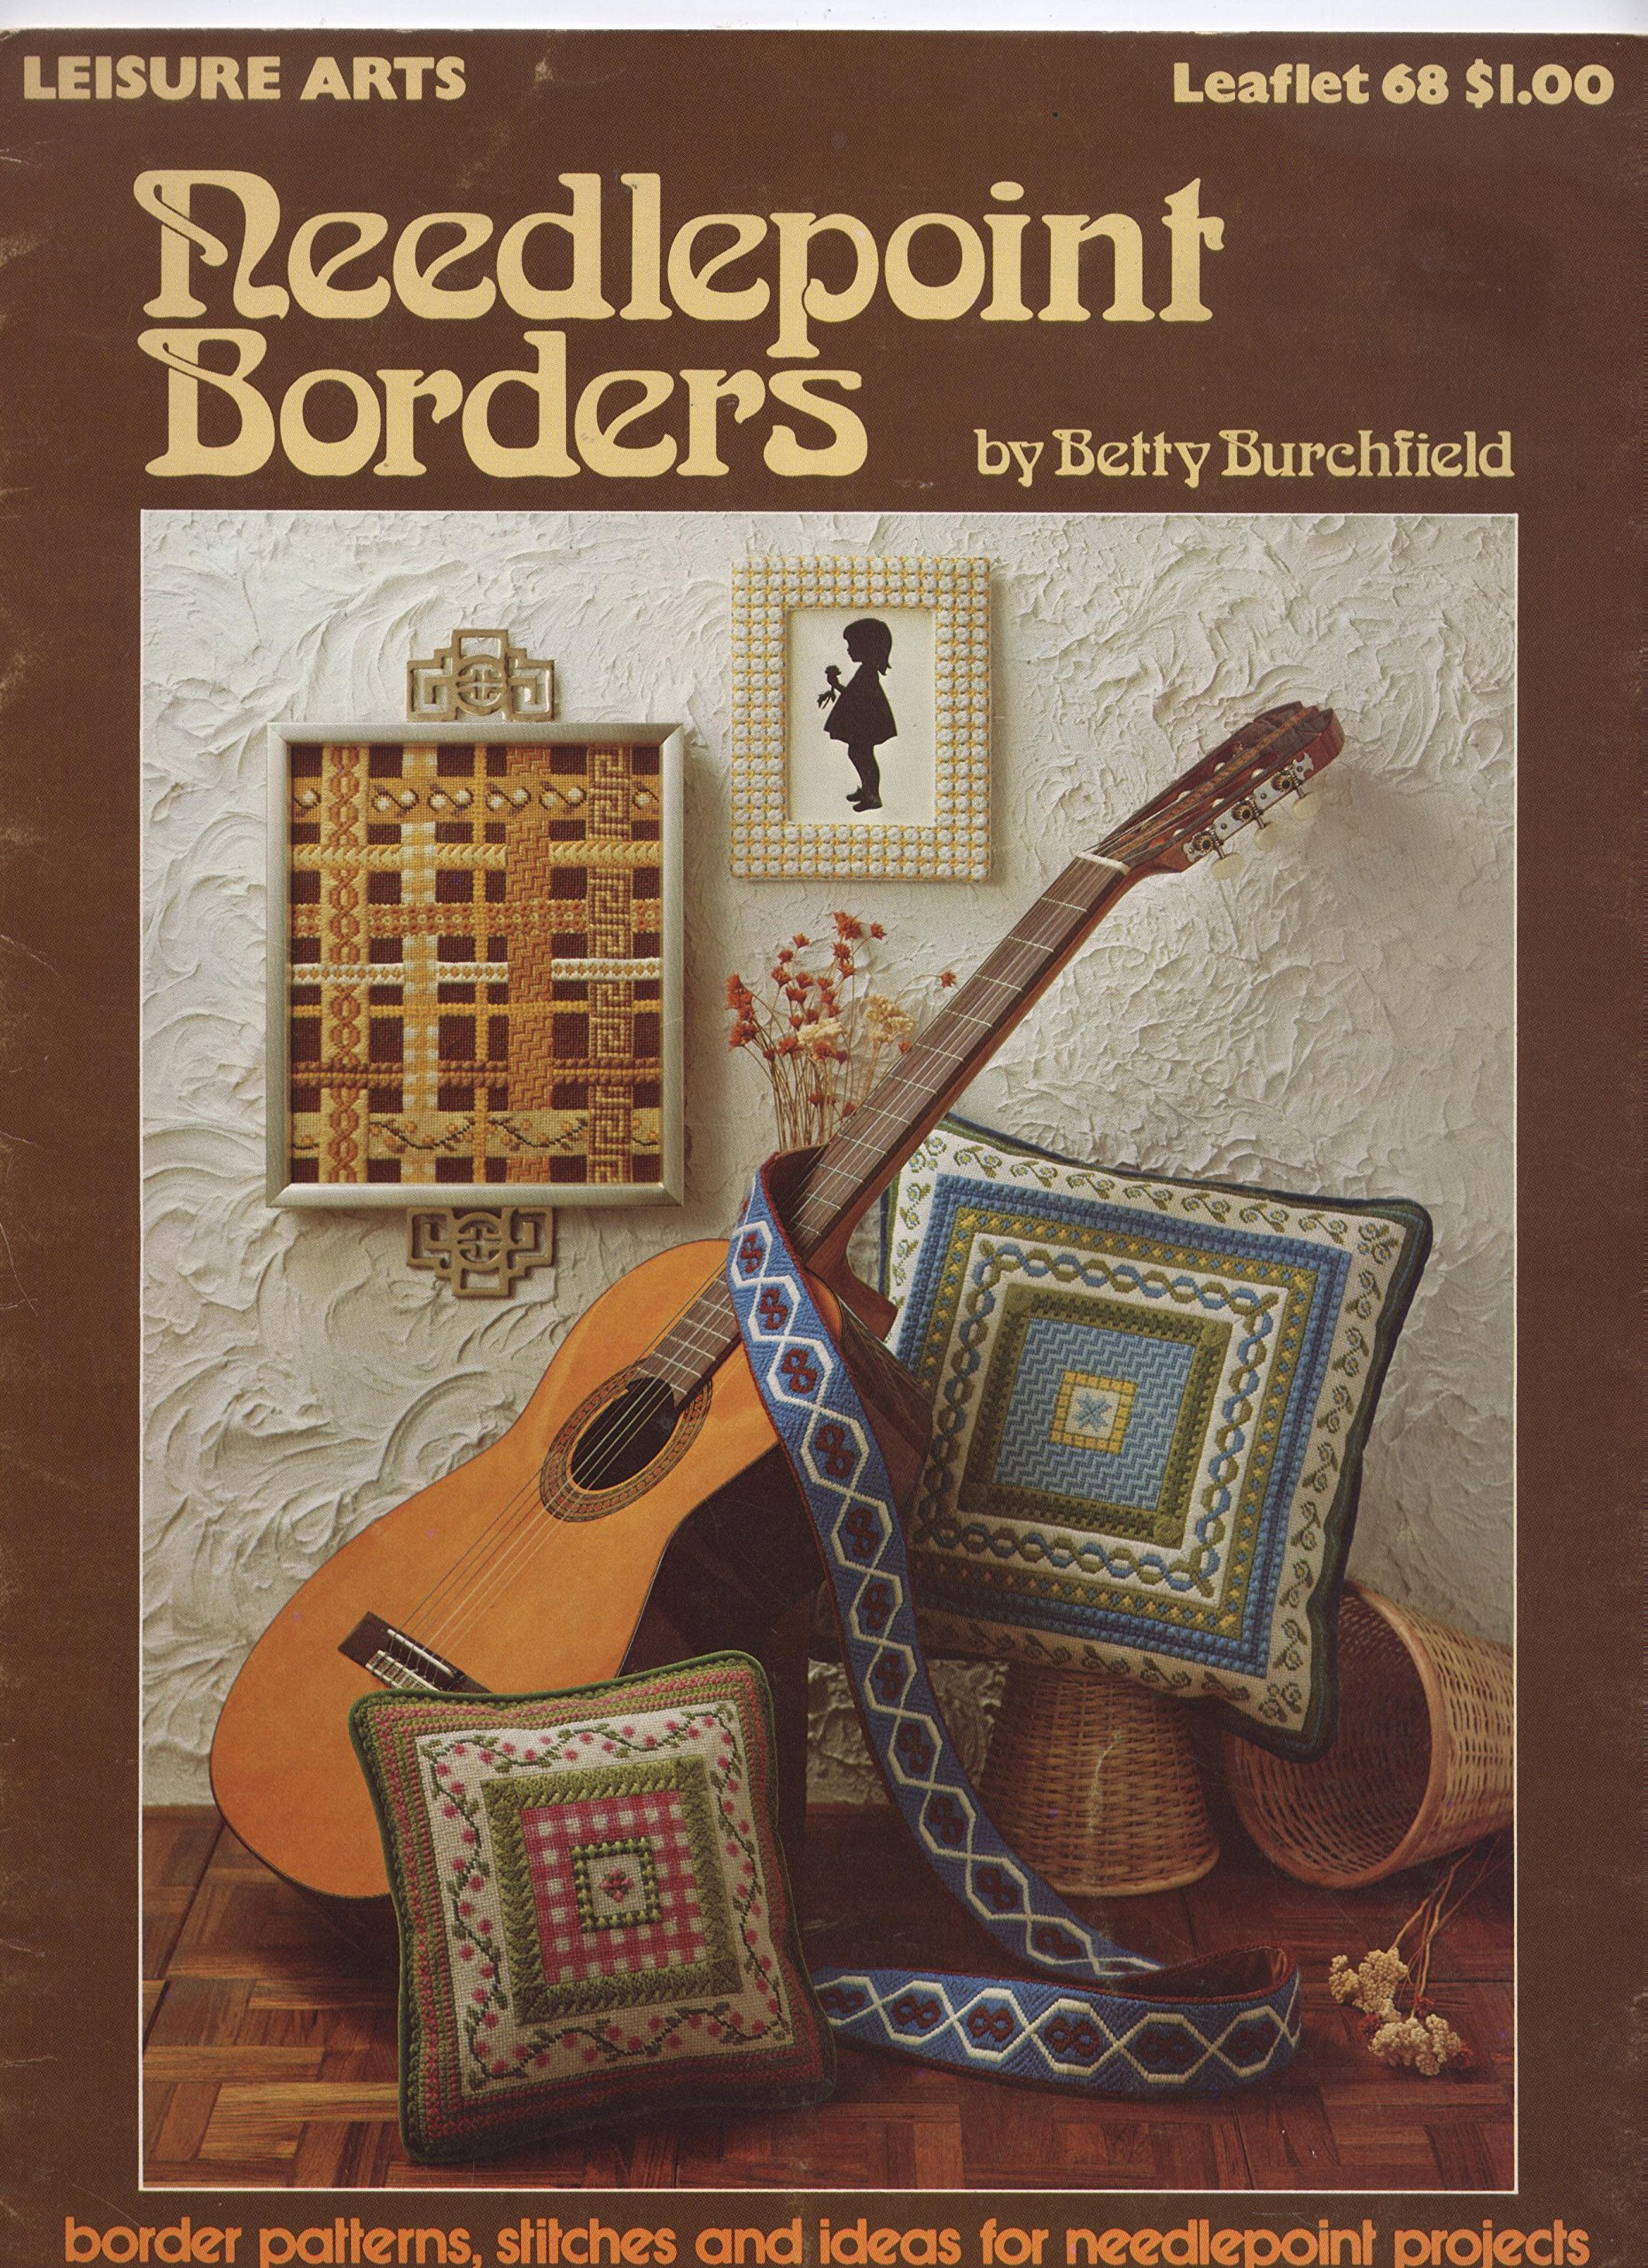 Needlepoint borders: Border patterns, stitches and ideas for needlepoint projects (Leisure Arts leaflet 68)